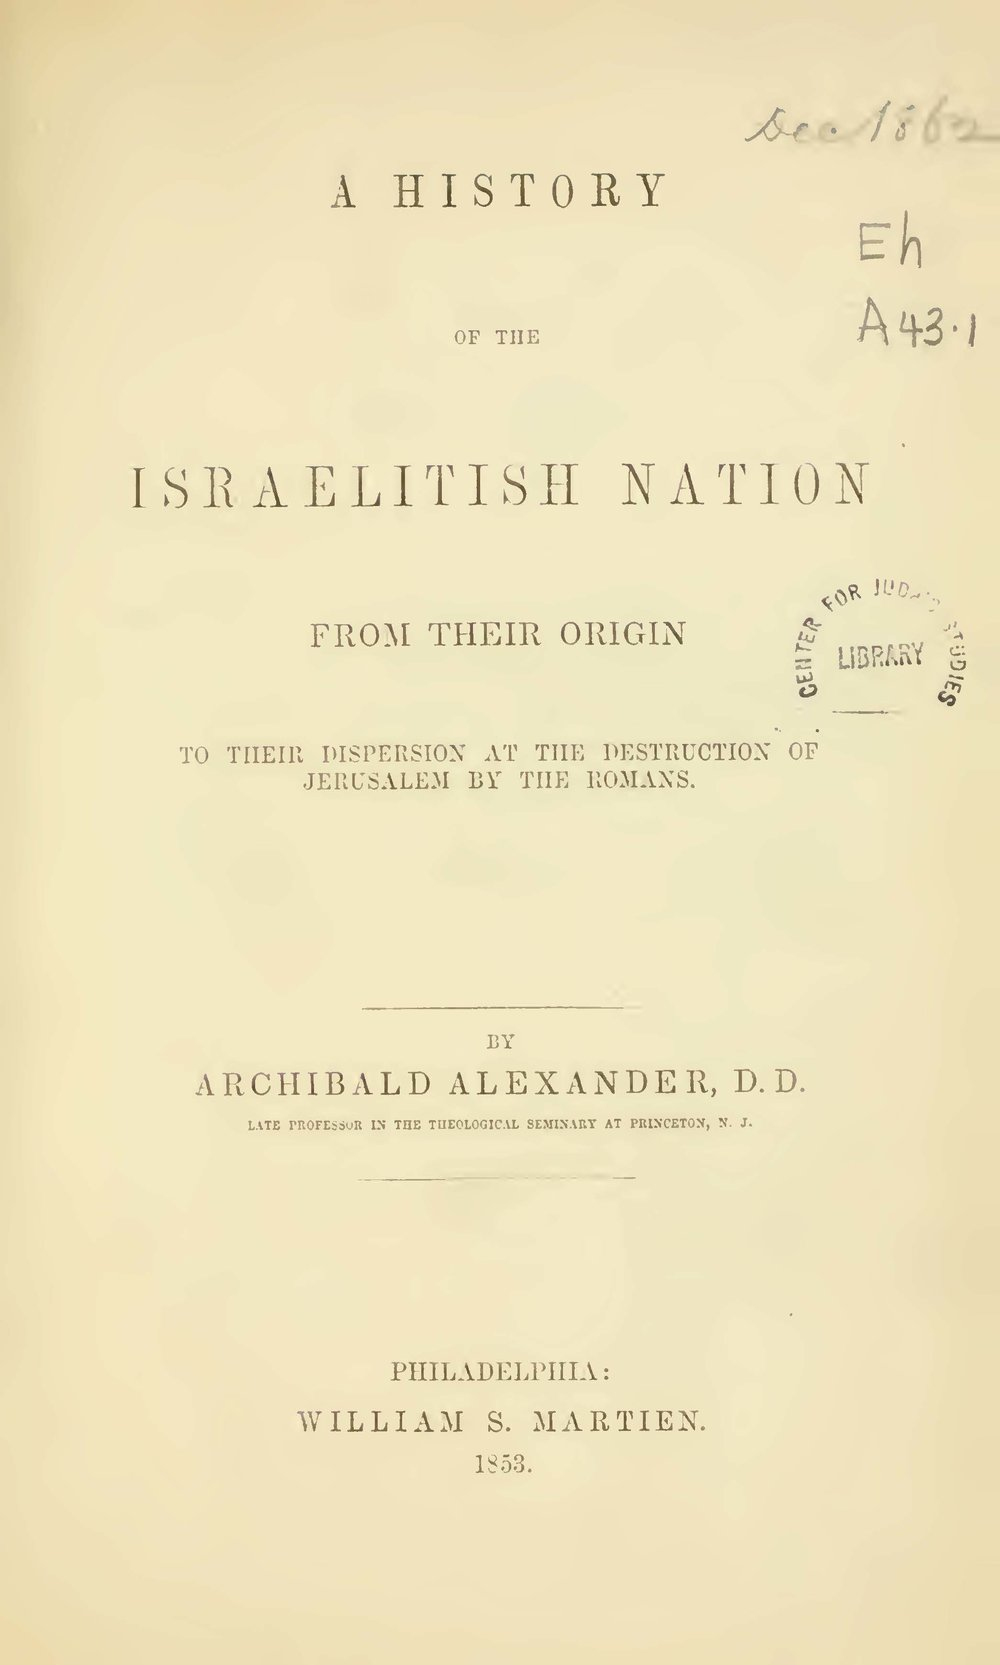 Alexander, Archibald, A History of the Israelitish Nation Title Page.jpg